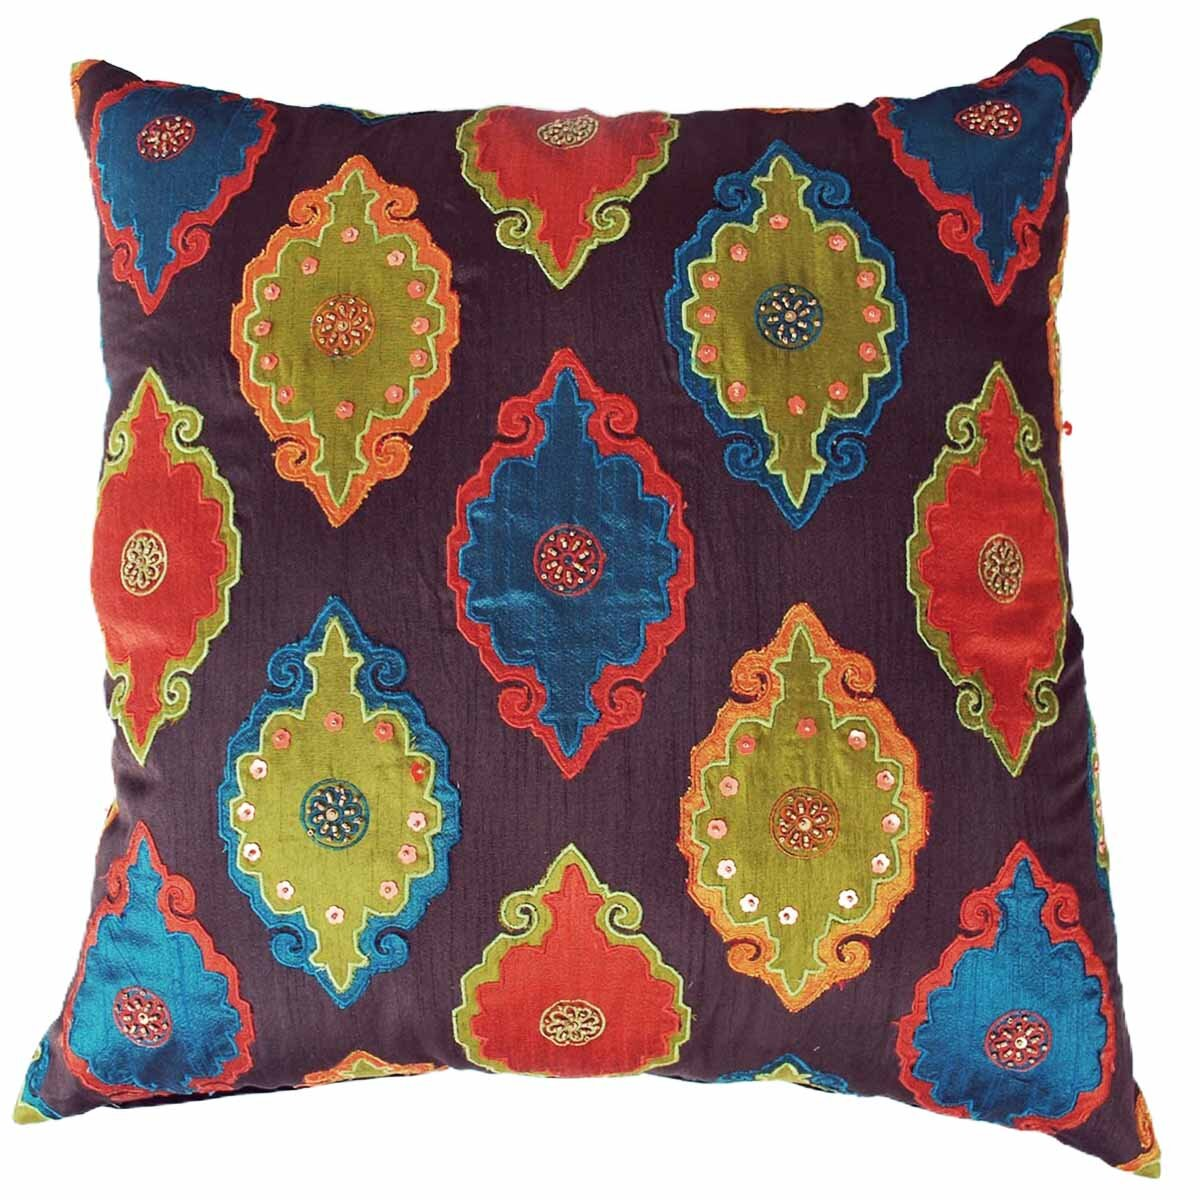 Emdee Handcrafted Square Pillow Cover And Insert Wayfair